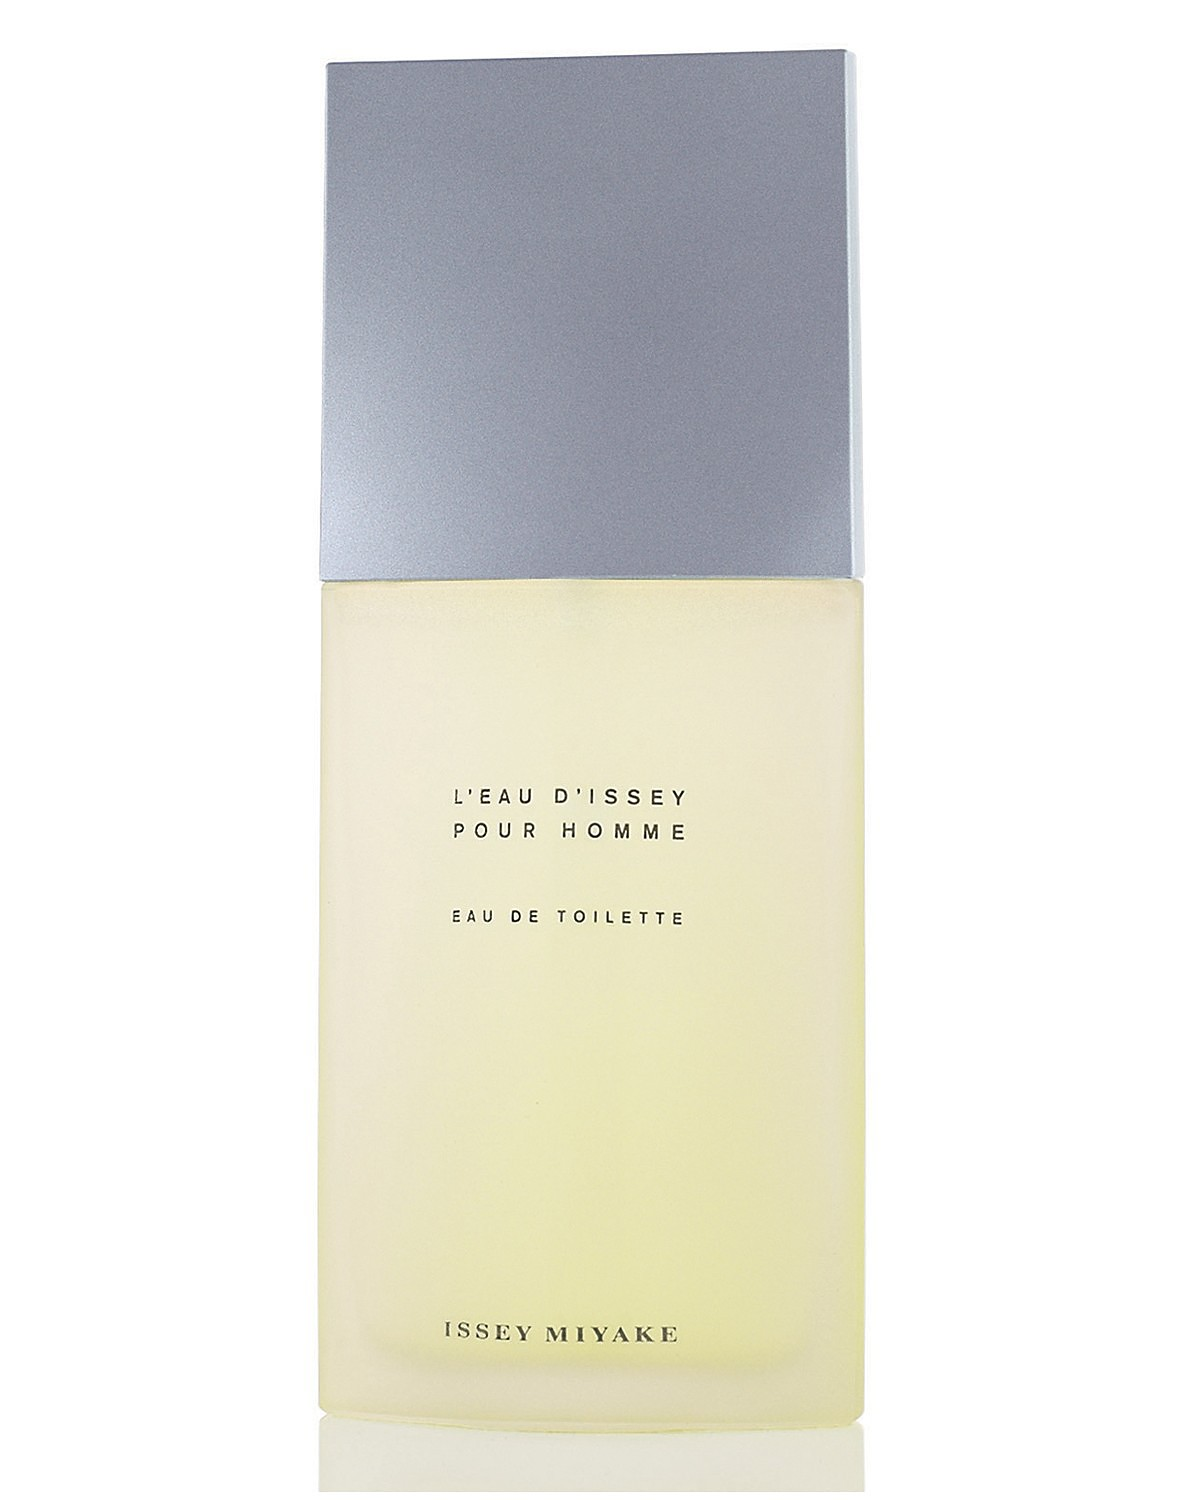 Issey Miyake: L'Eau d'Issey pour Homme